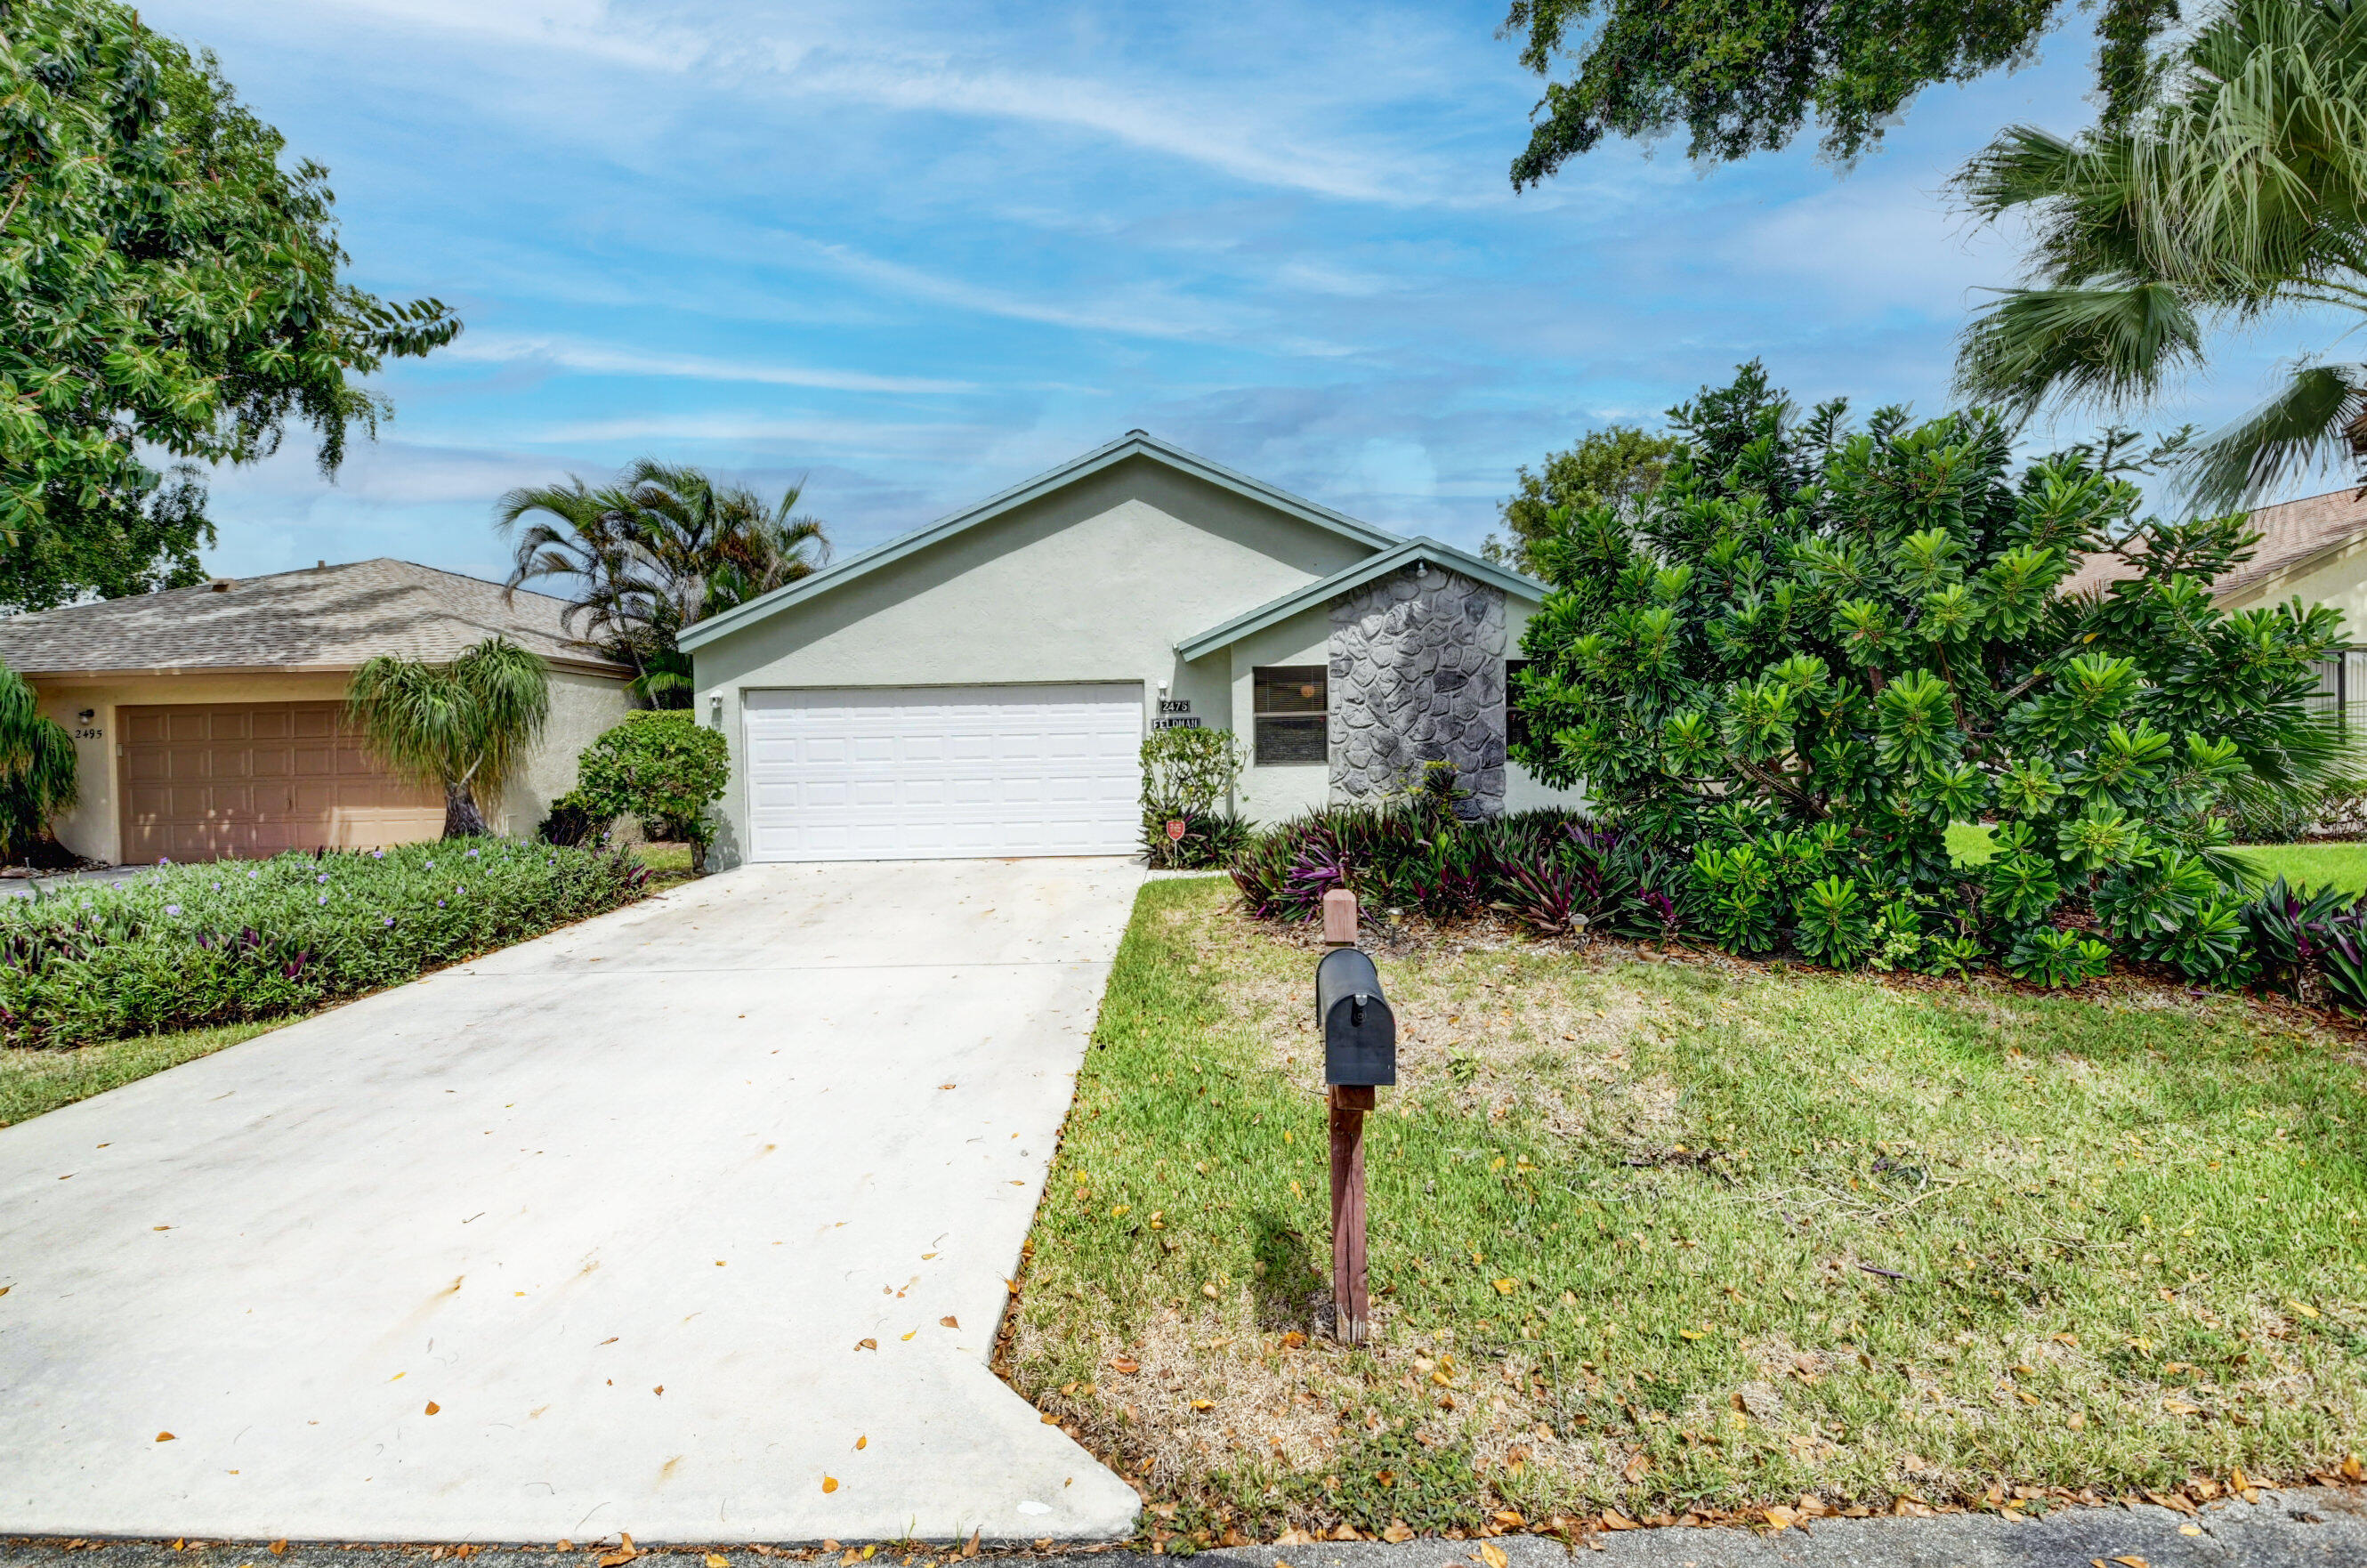 2475 NW 14th Street  For Sale 10749434, FL